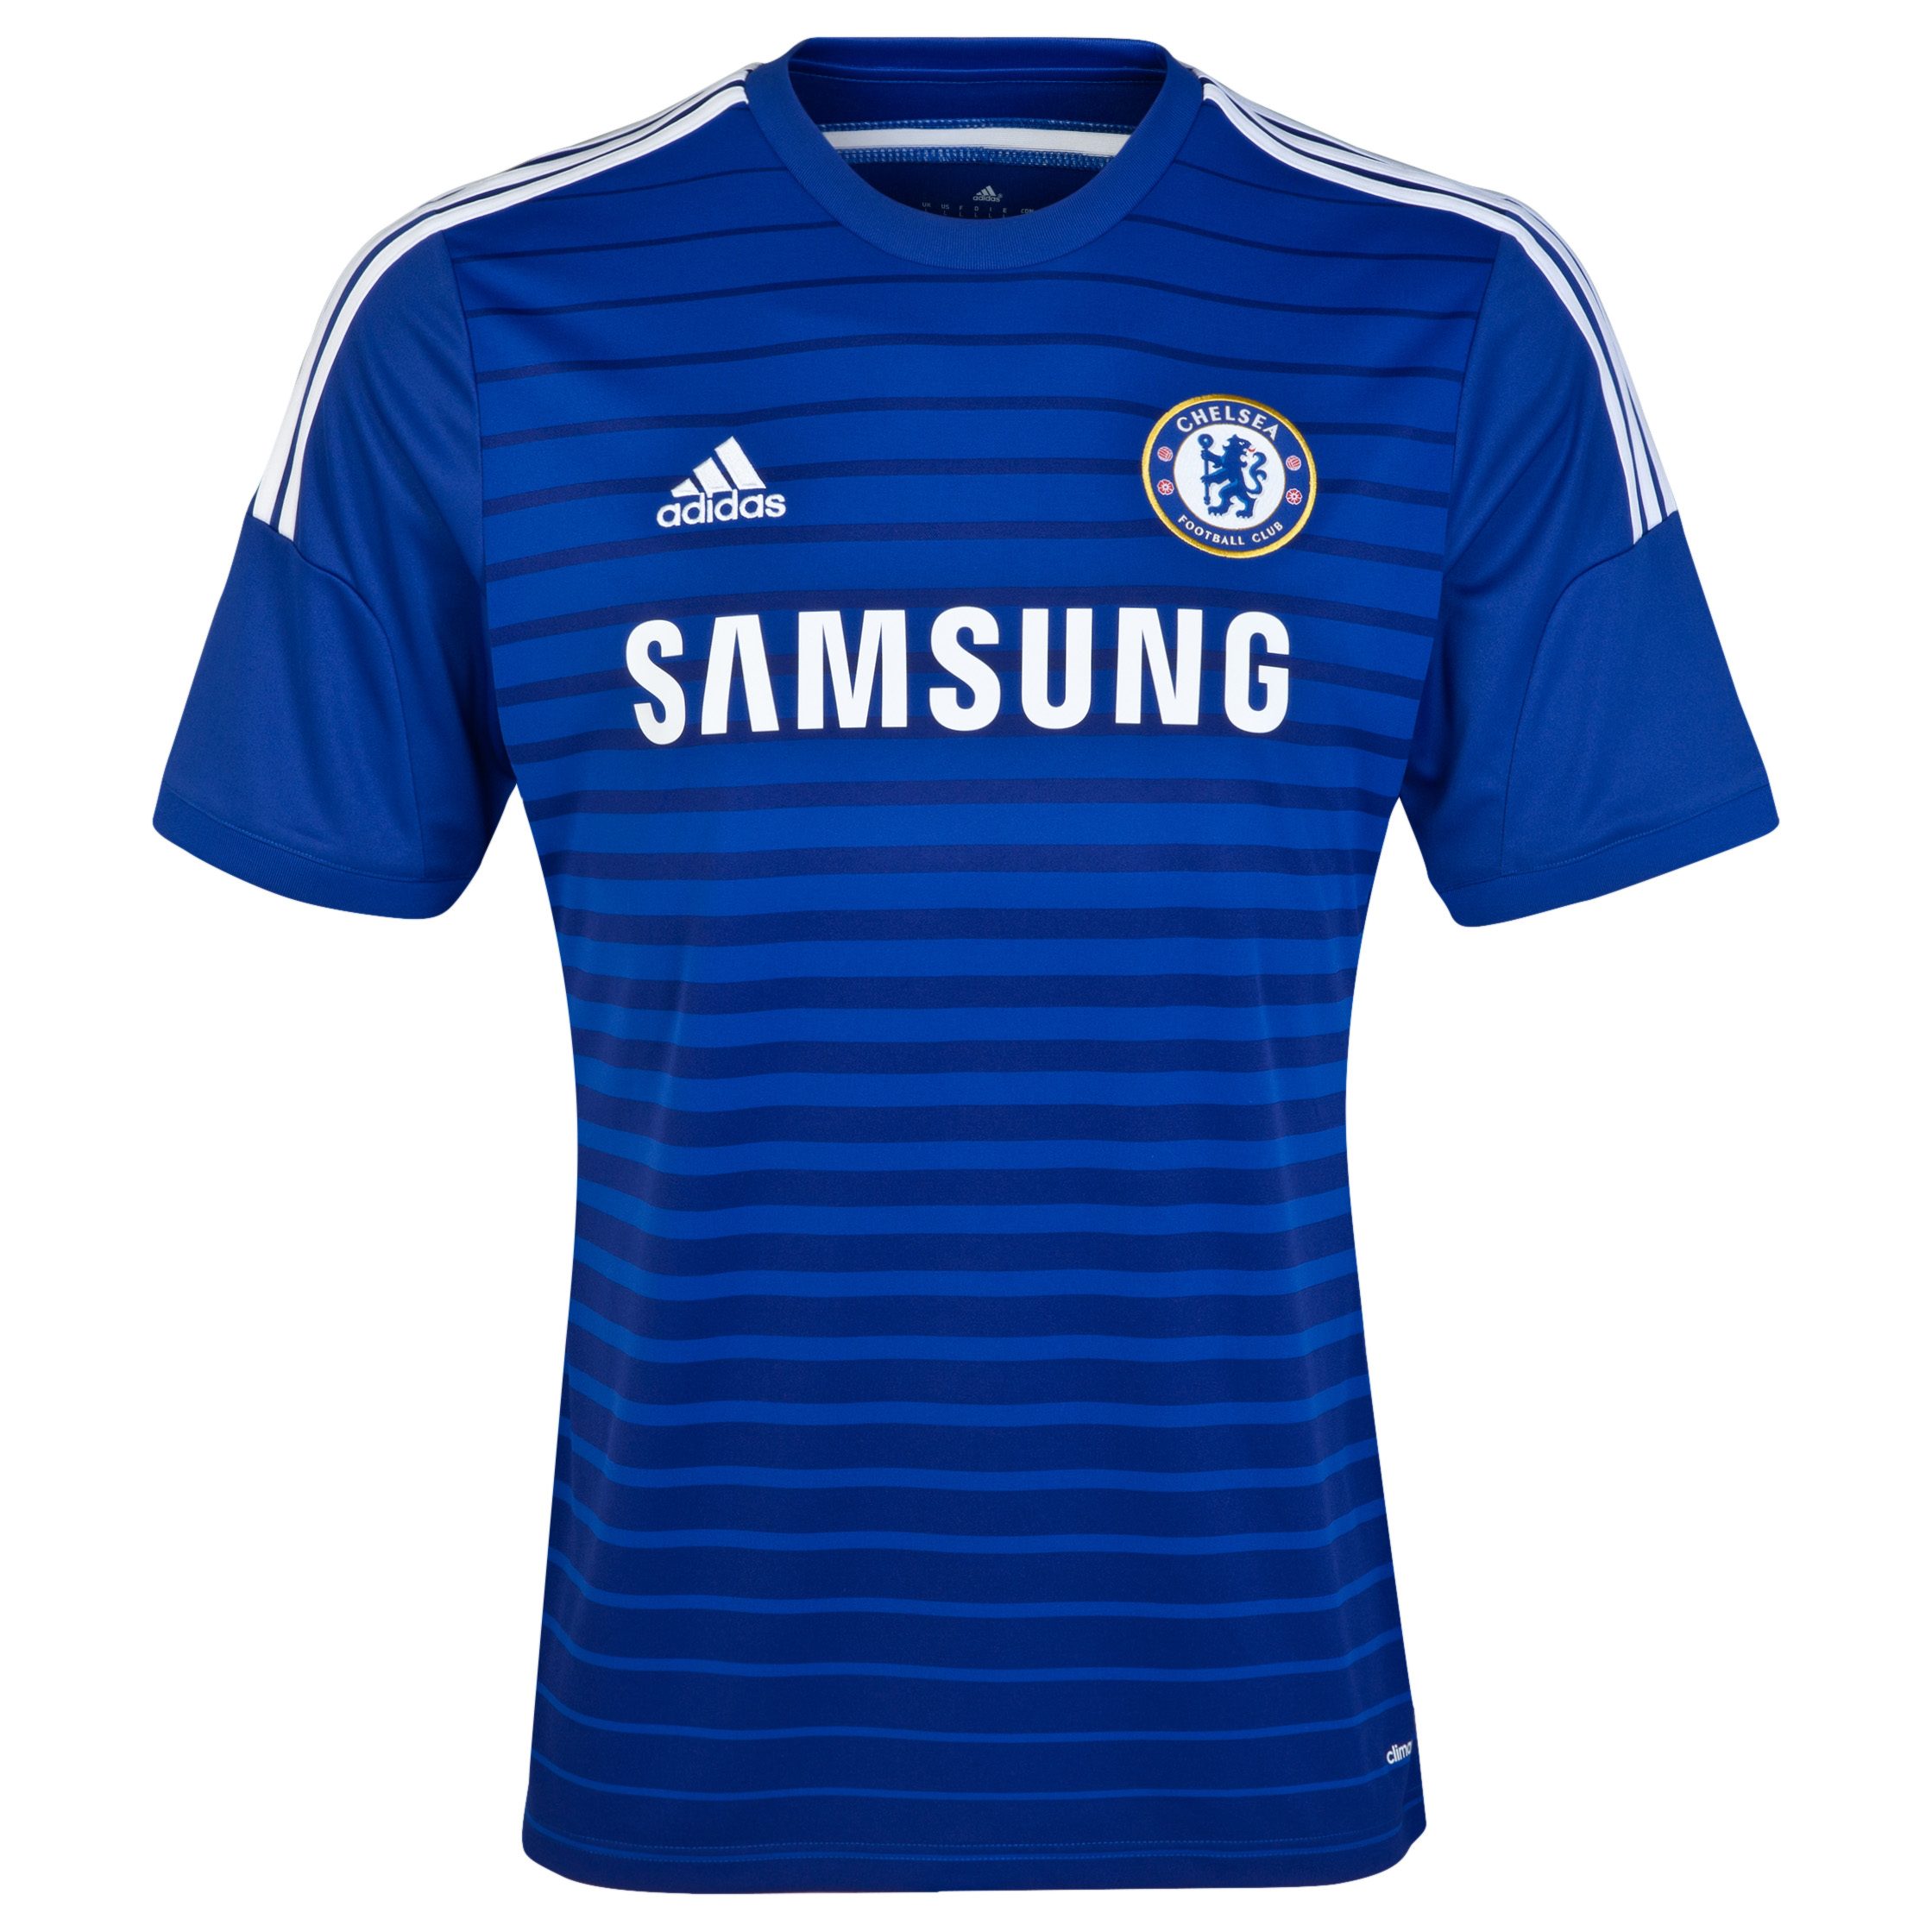 Chelsea Home Shirt 2014/15 - Outsize